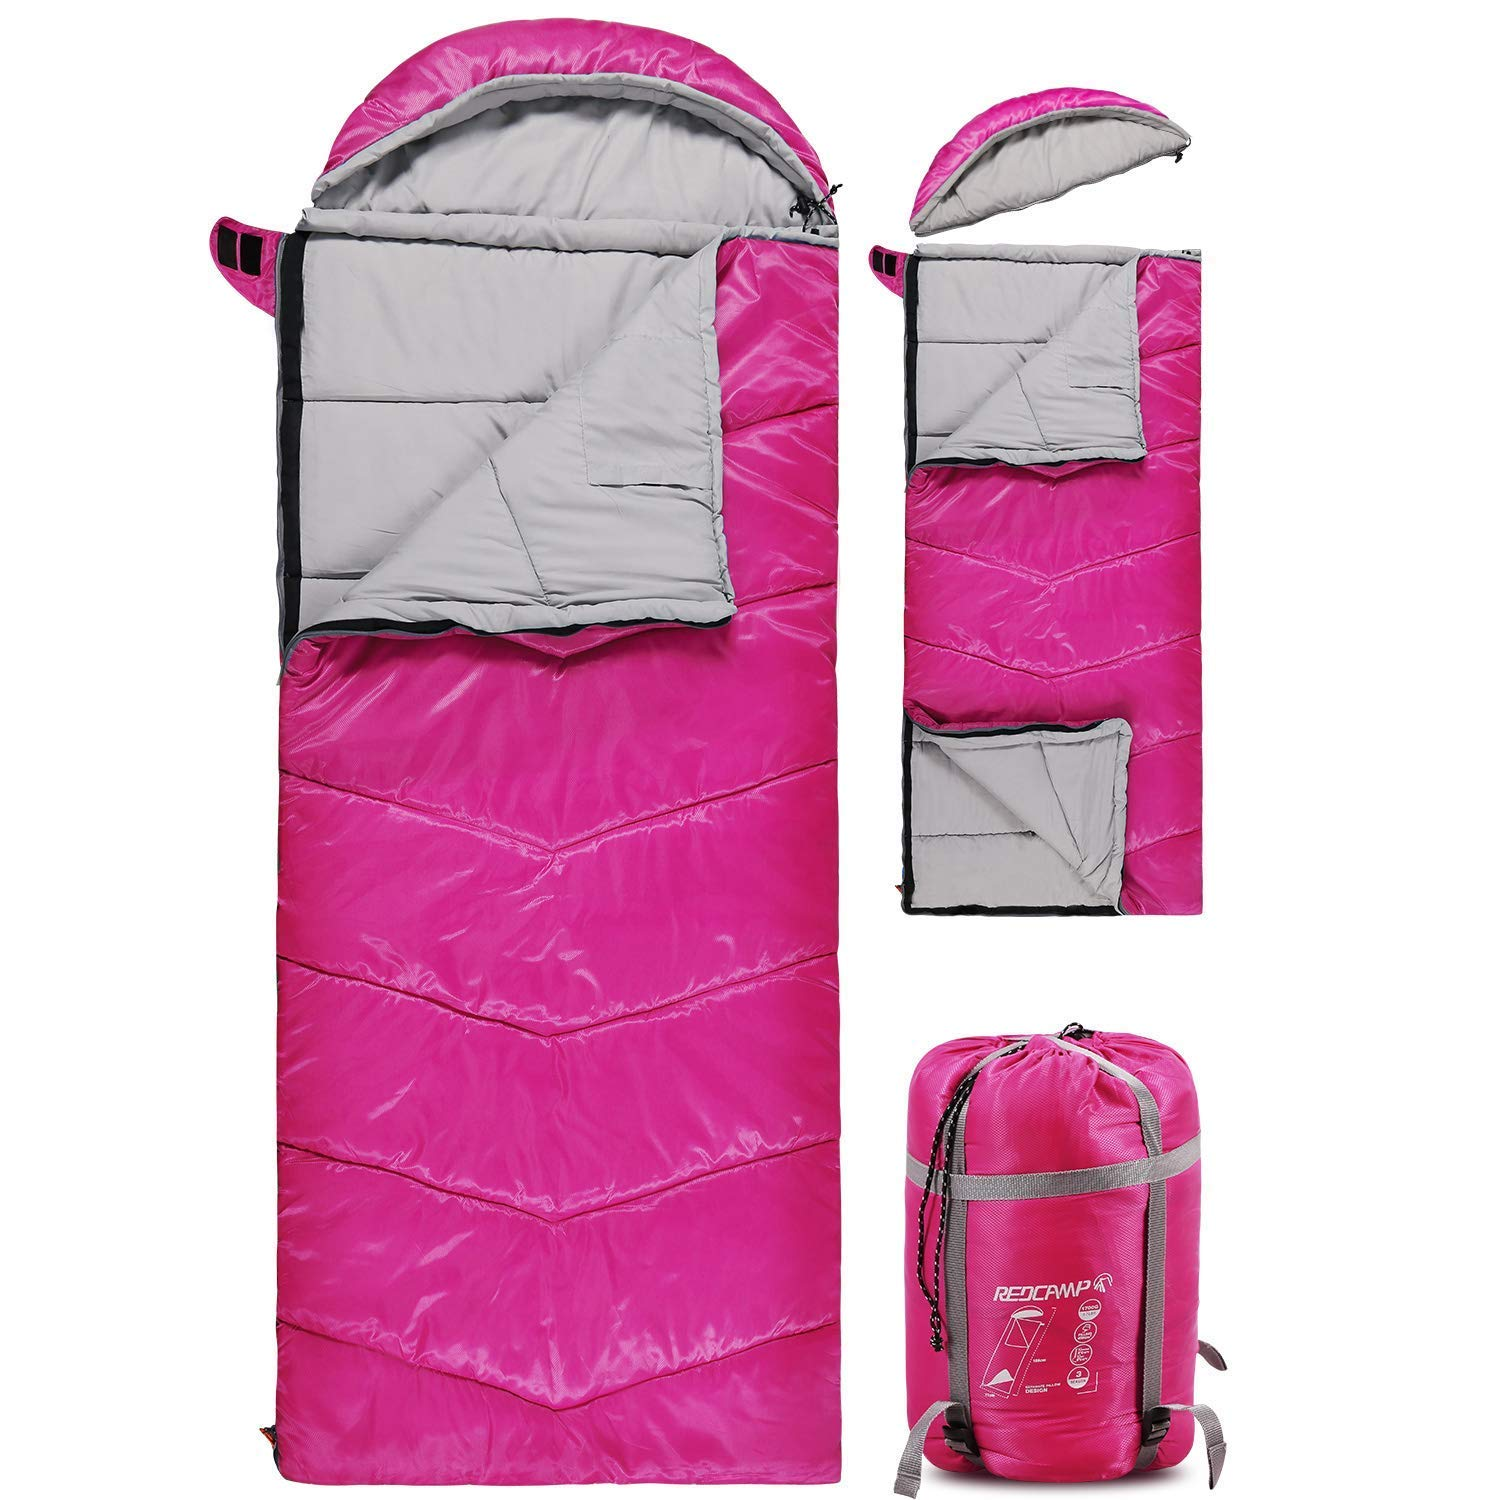 REDCAMP Kids Sleeping Bag for Camping with Detachable Hood, 32 Degree 3 Season Warm or Cold Weather Fit Boys, Girls & Teens (Rose Red with 3.7lbs Filling) by REDCAMP